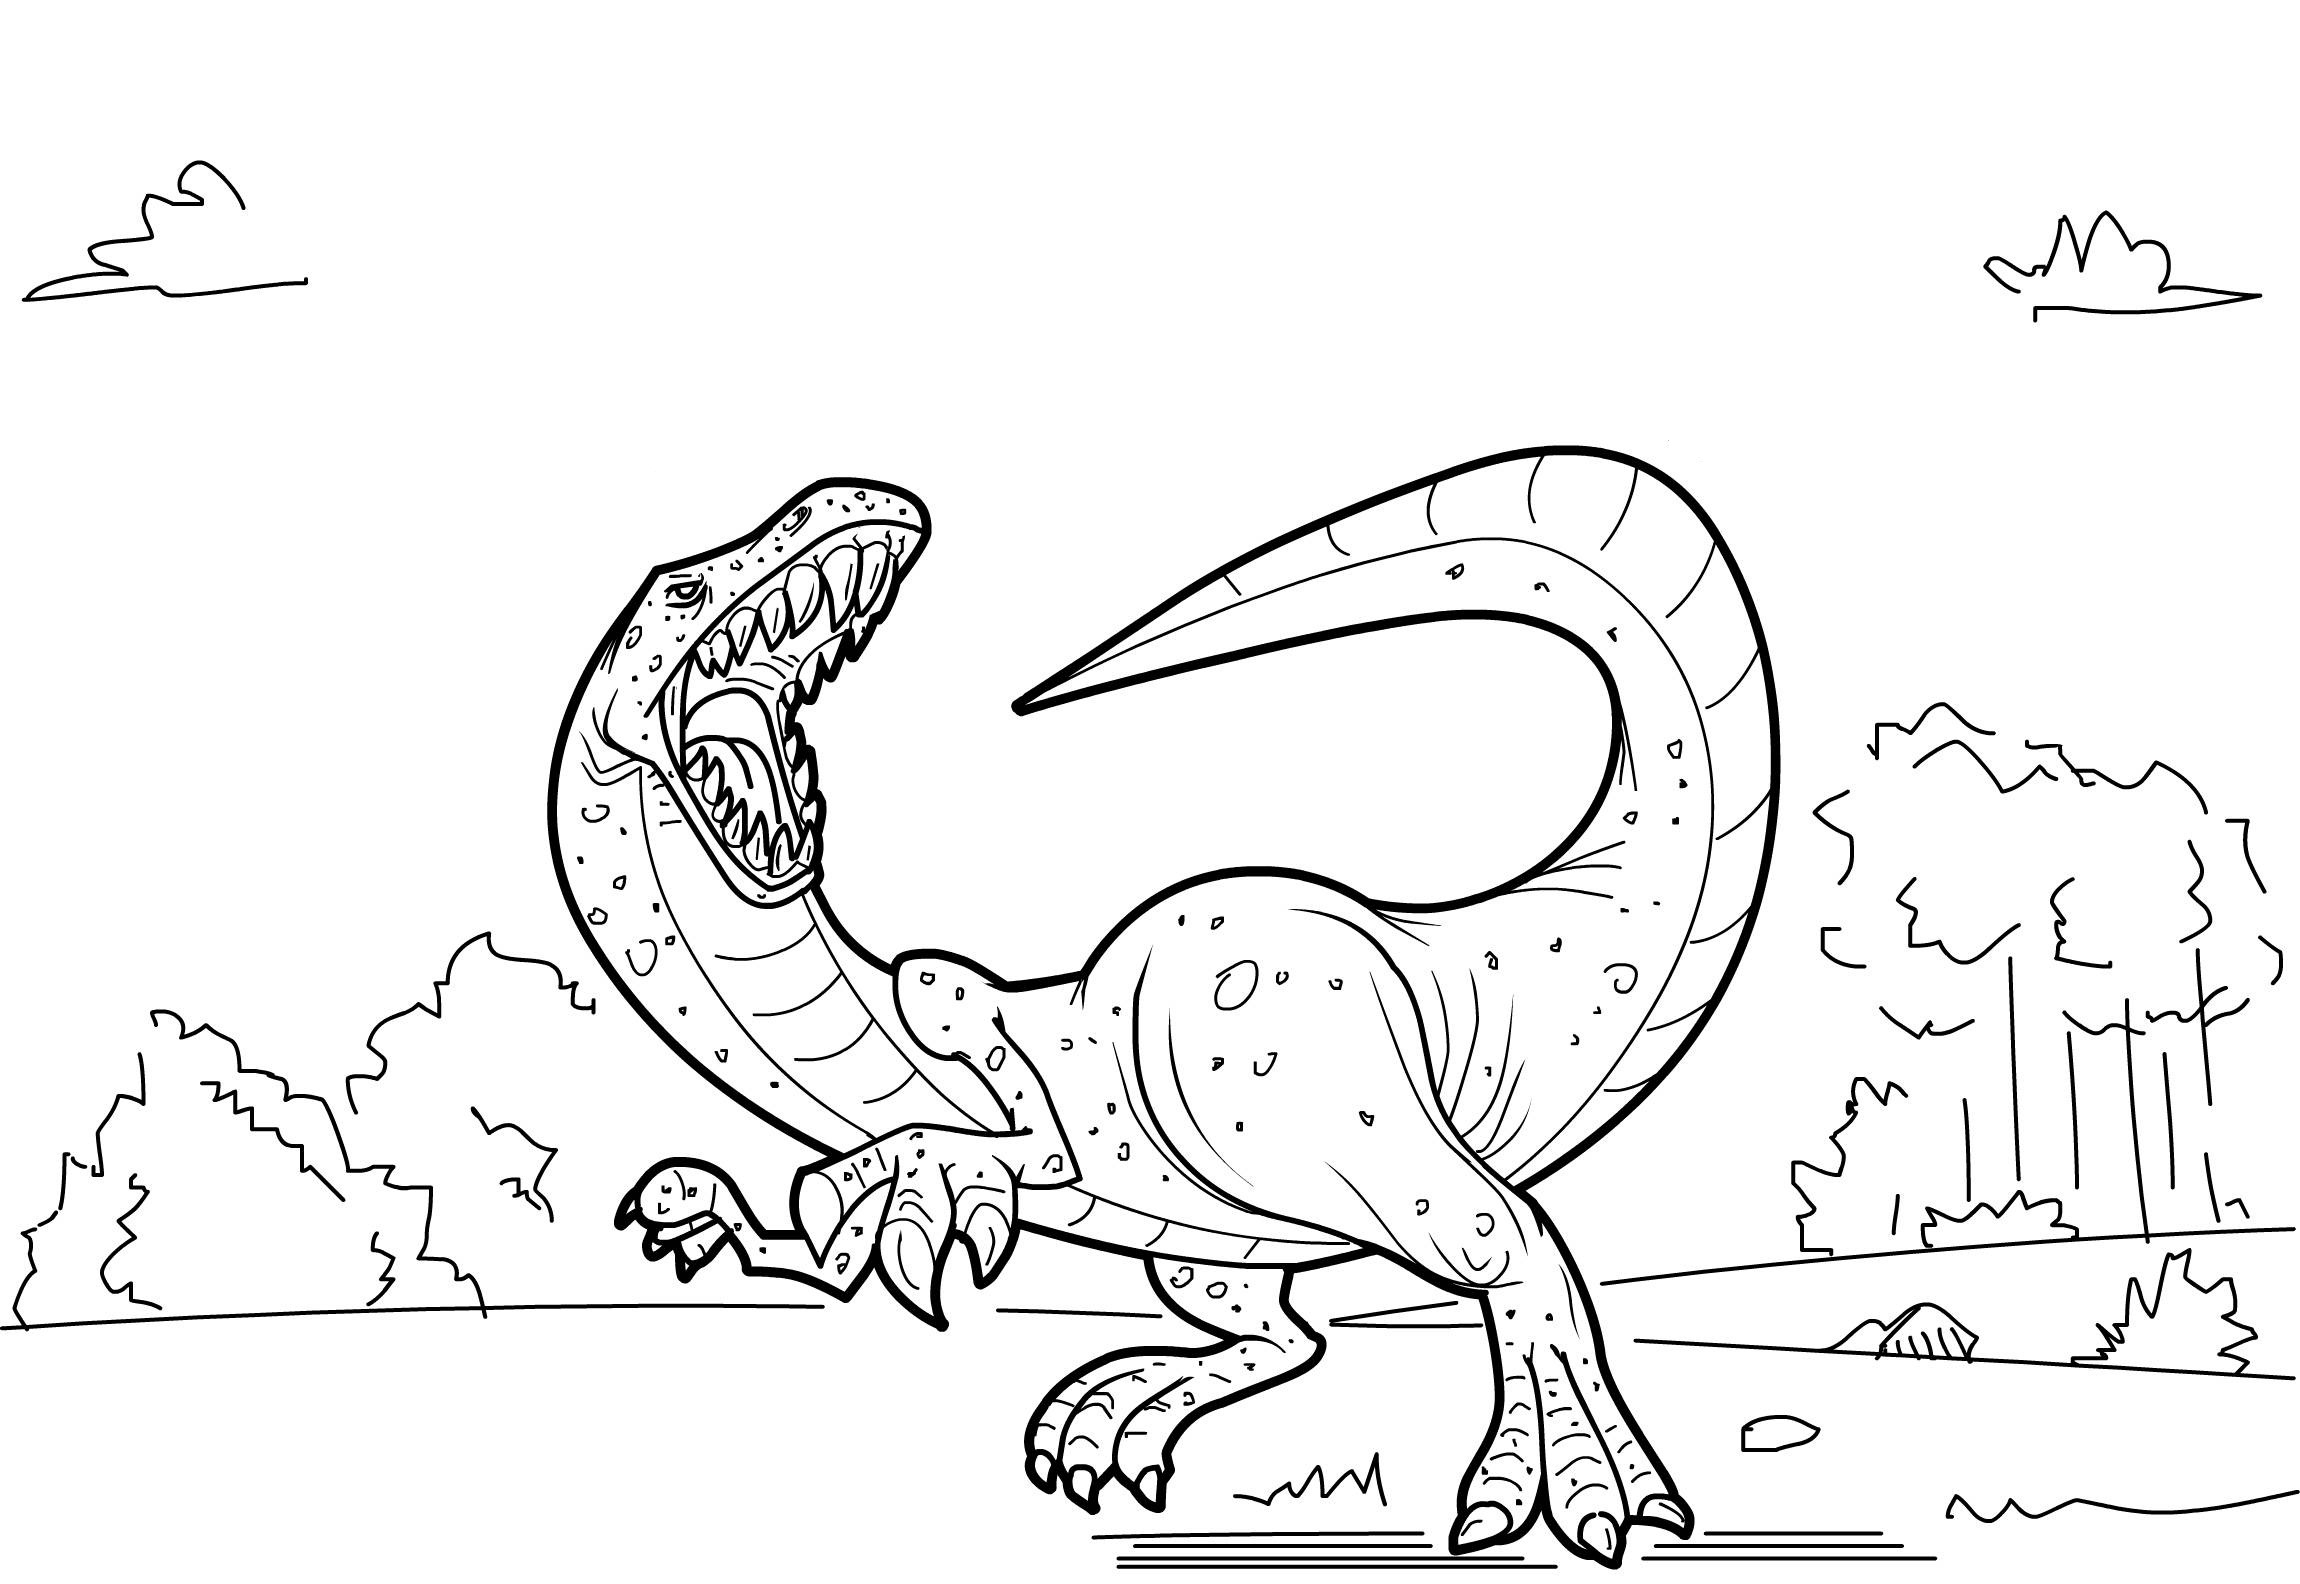 printable dinosaur coloring pages - free printable dinosaur coloring pages